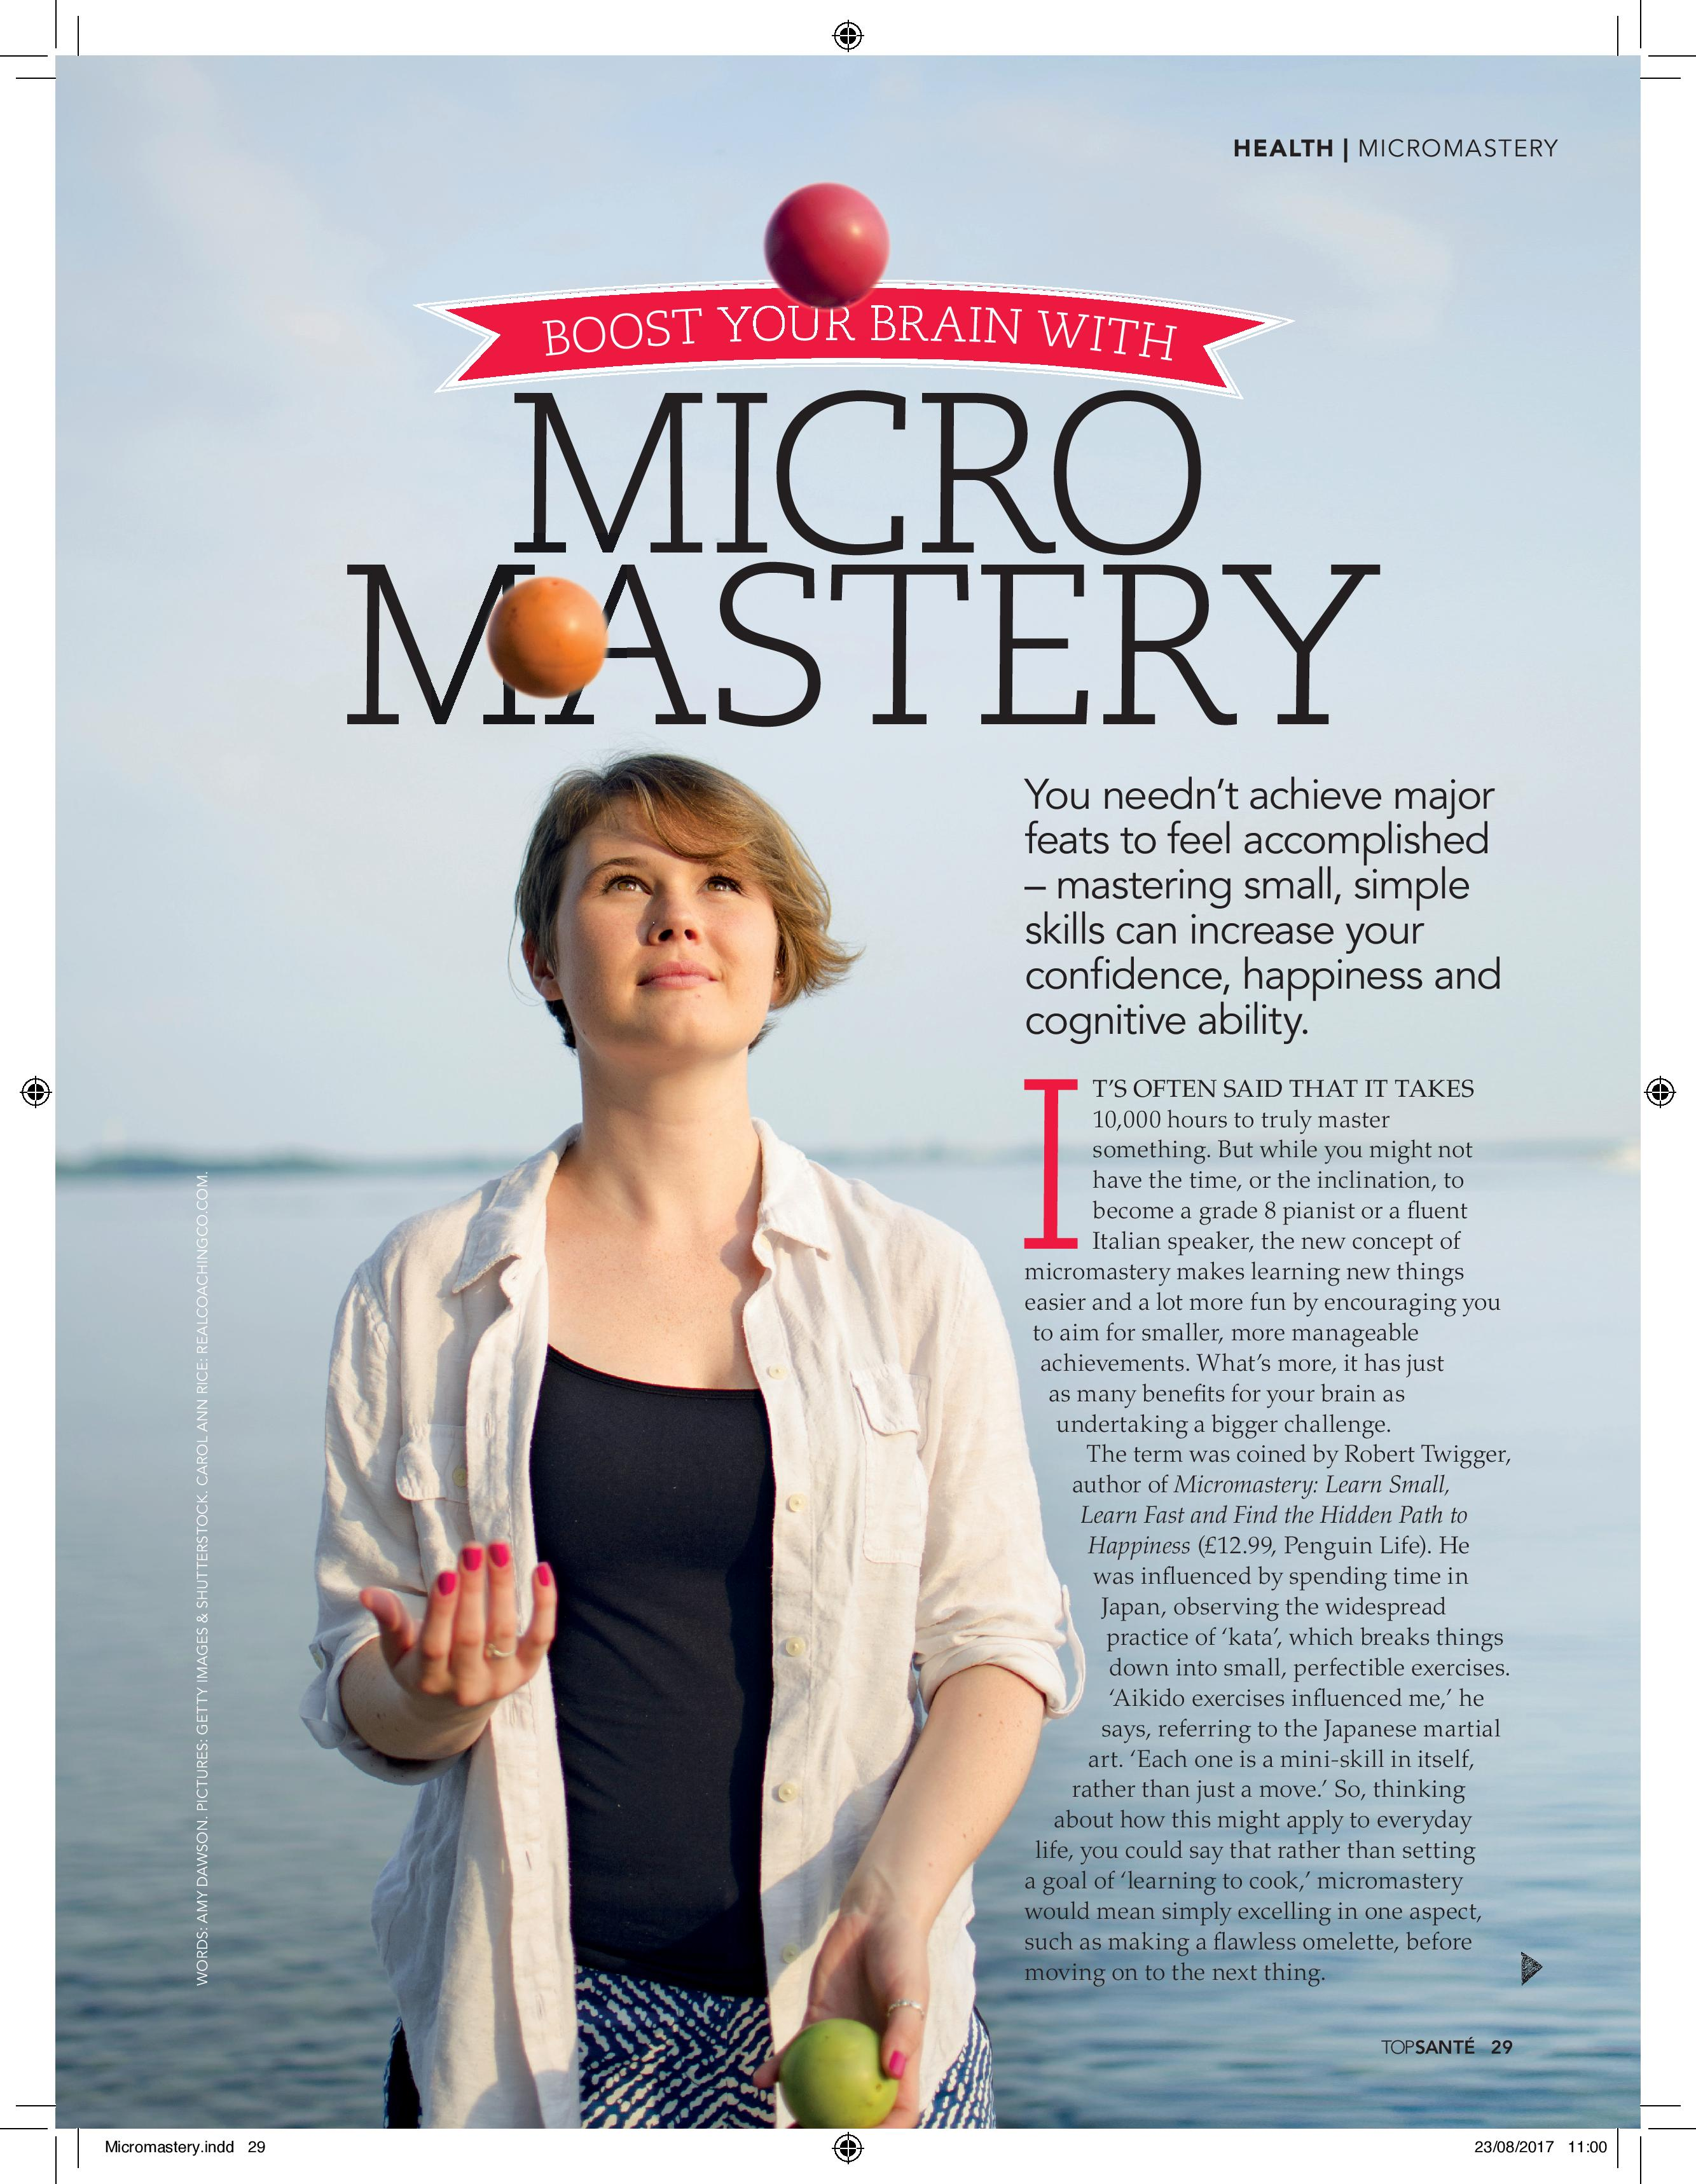 Boost Your Brain with Micromastery (Top Sante, Sep 2017)